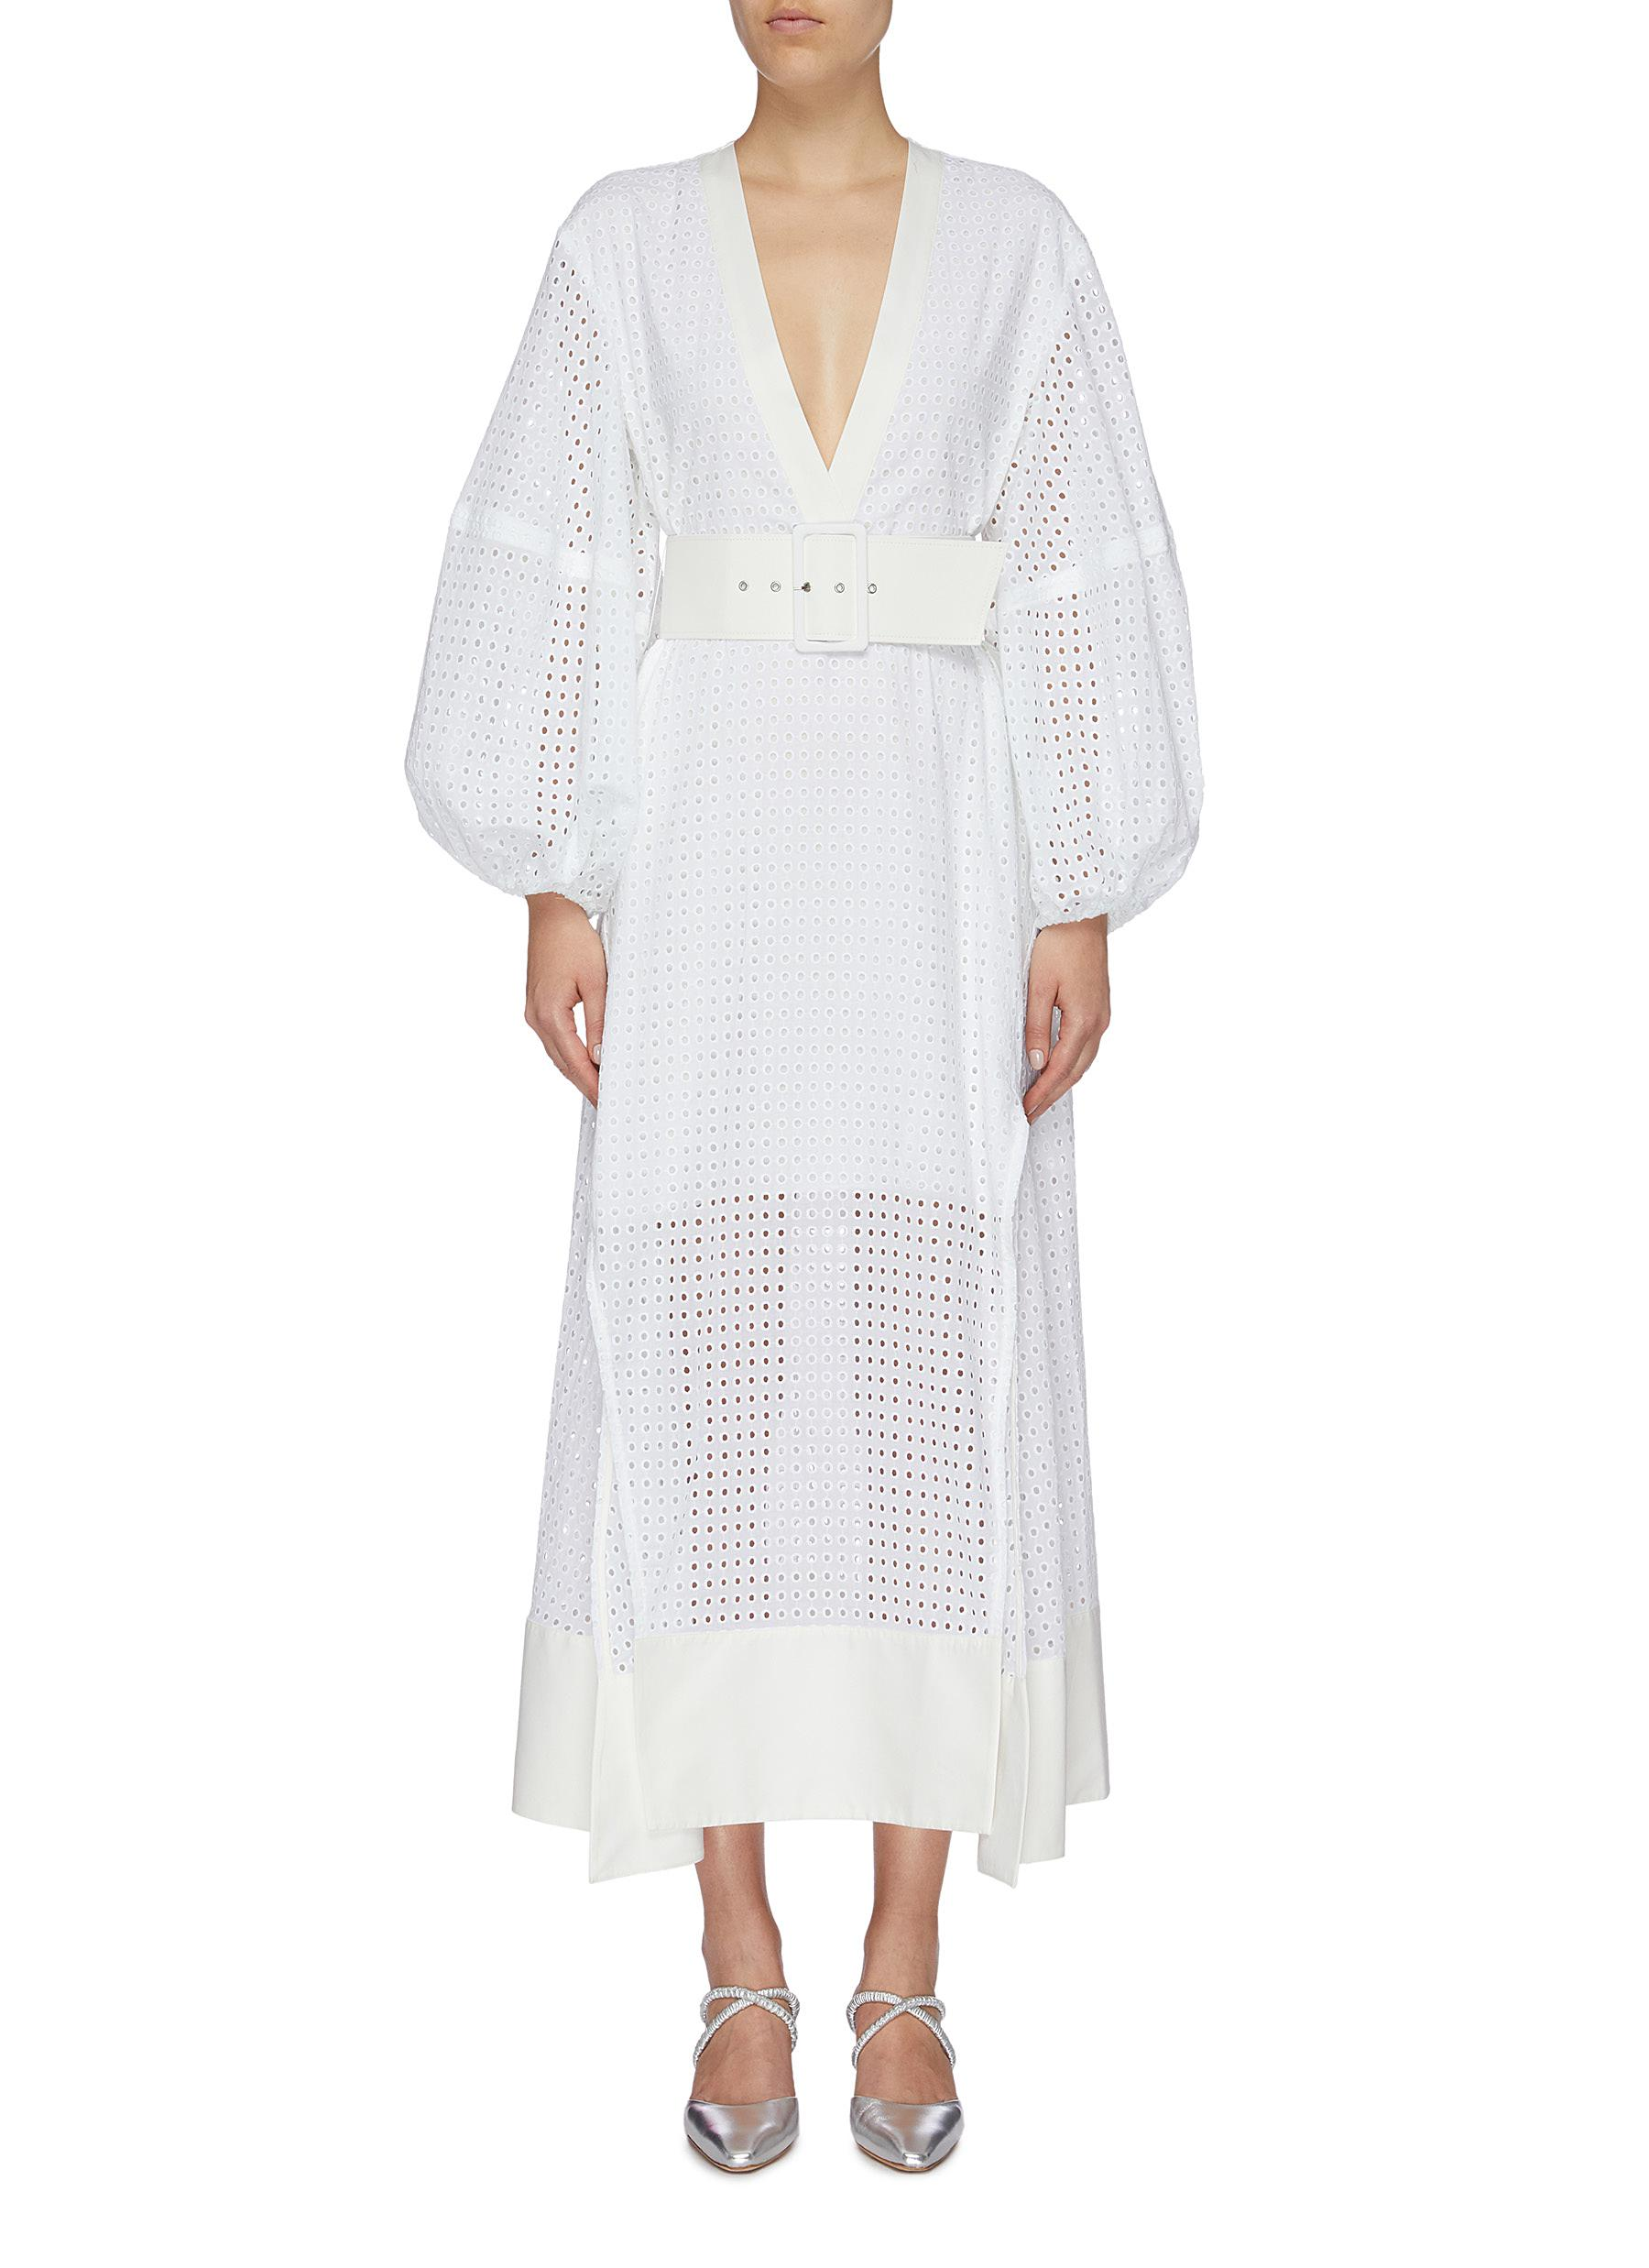 Cora belted puff sleeve broderie anglaise V-neck dress by Solace London